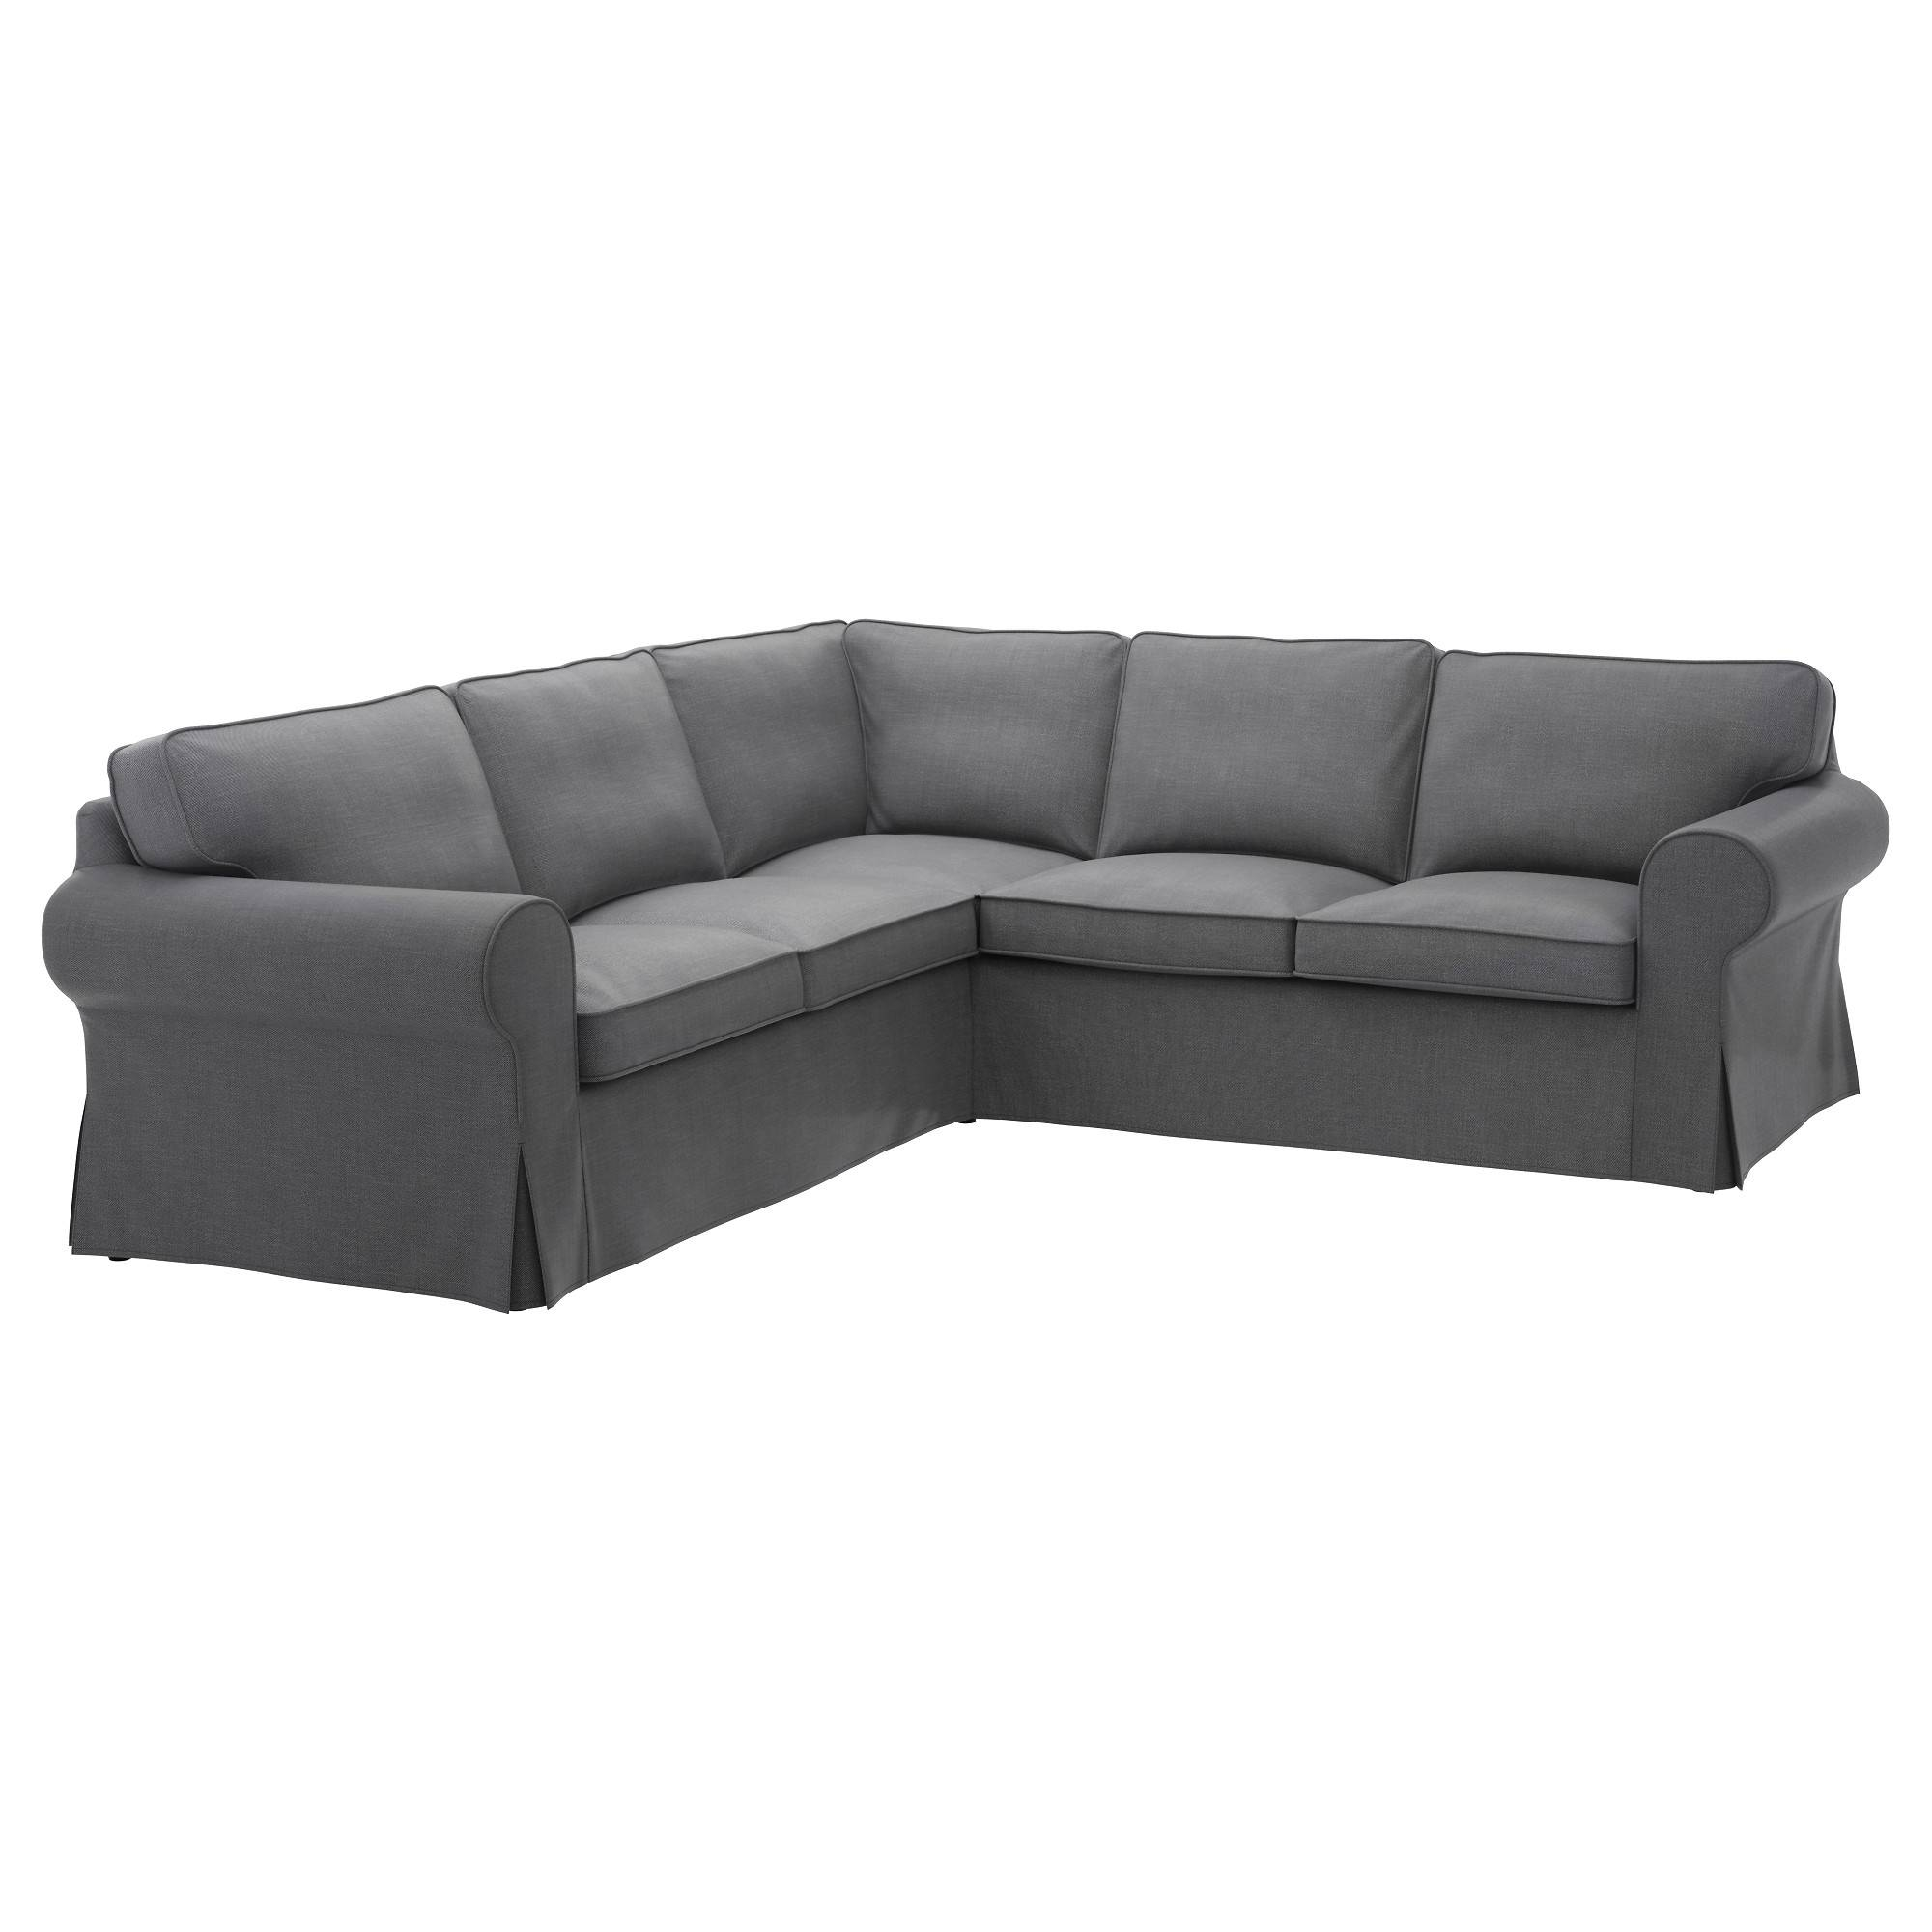 Ektorp Cover For 4-Seat Corner Sectional - Nordvalla Dark Gray - Ikea in Large 4 Seater Sofas (Image 7 of 30)